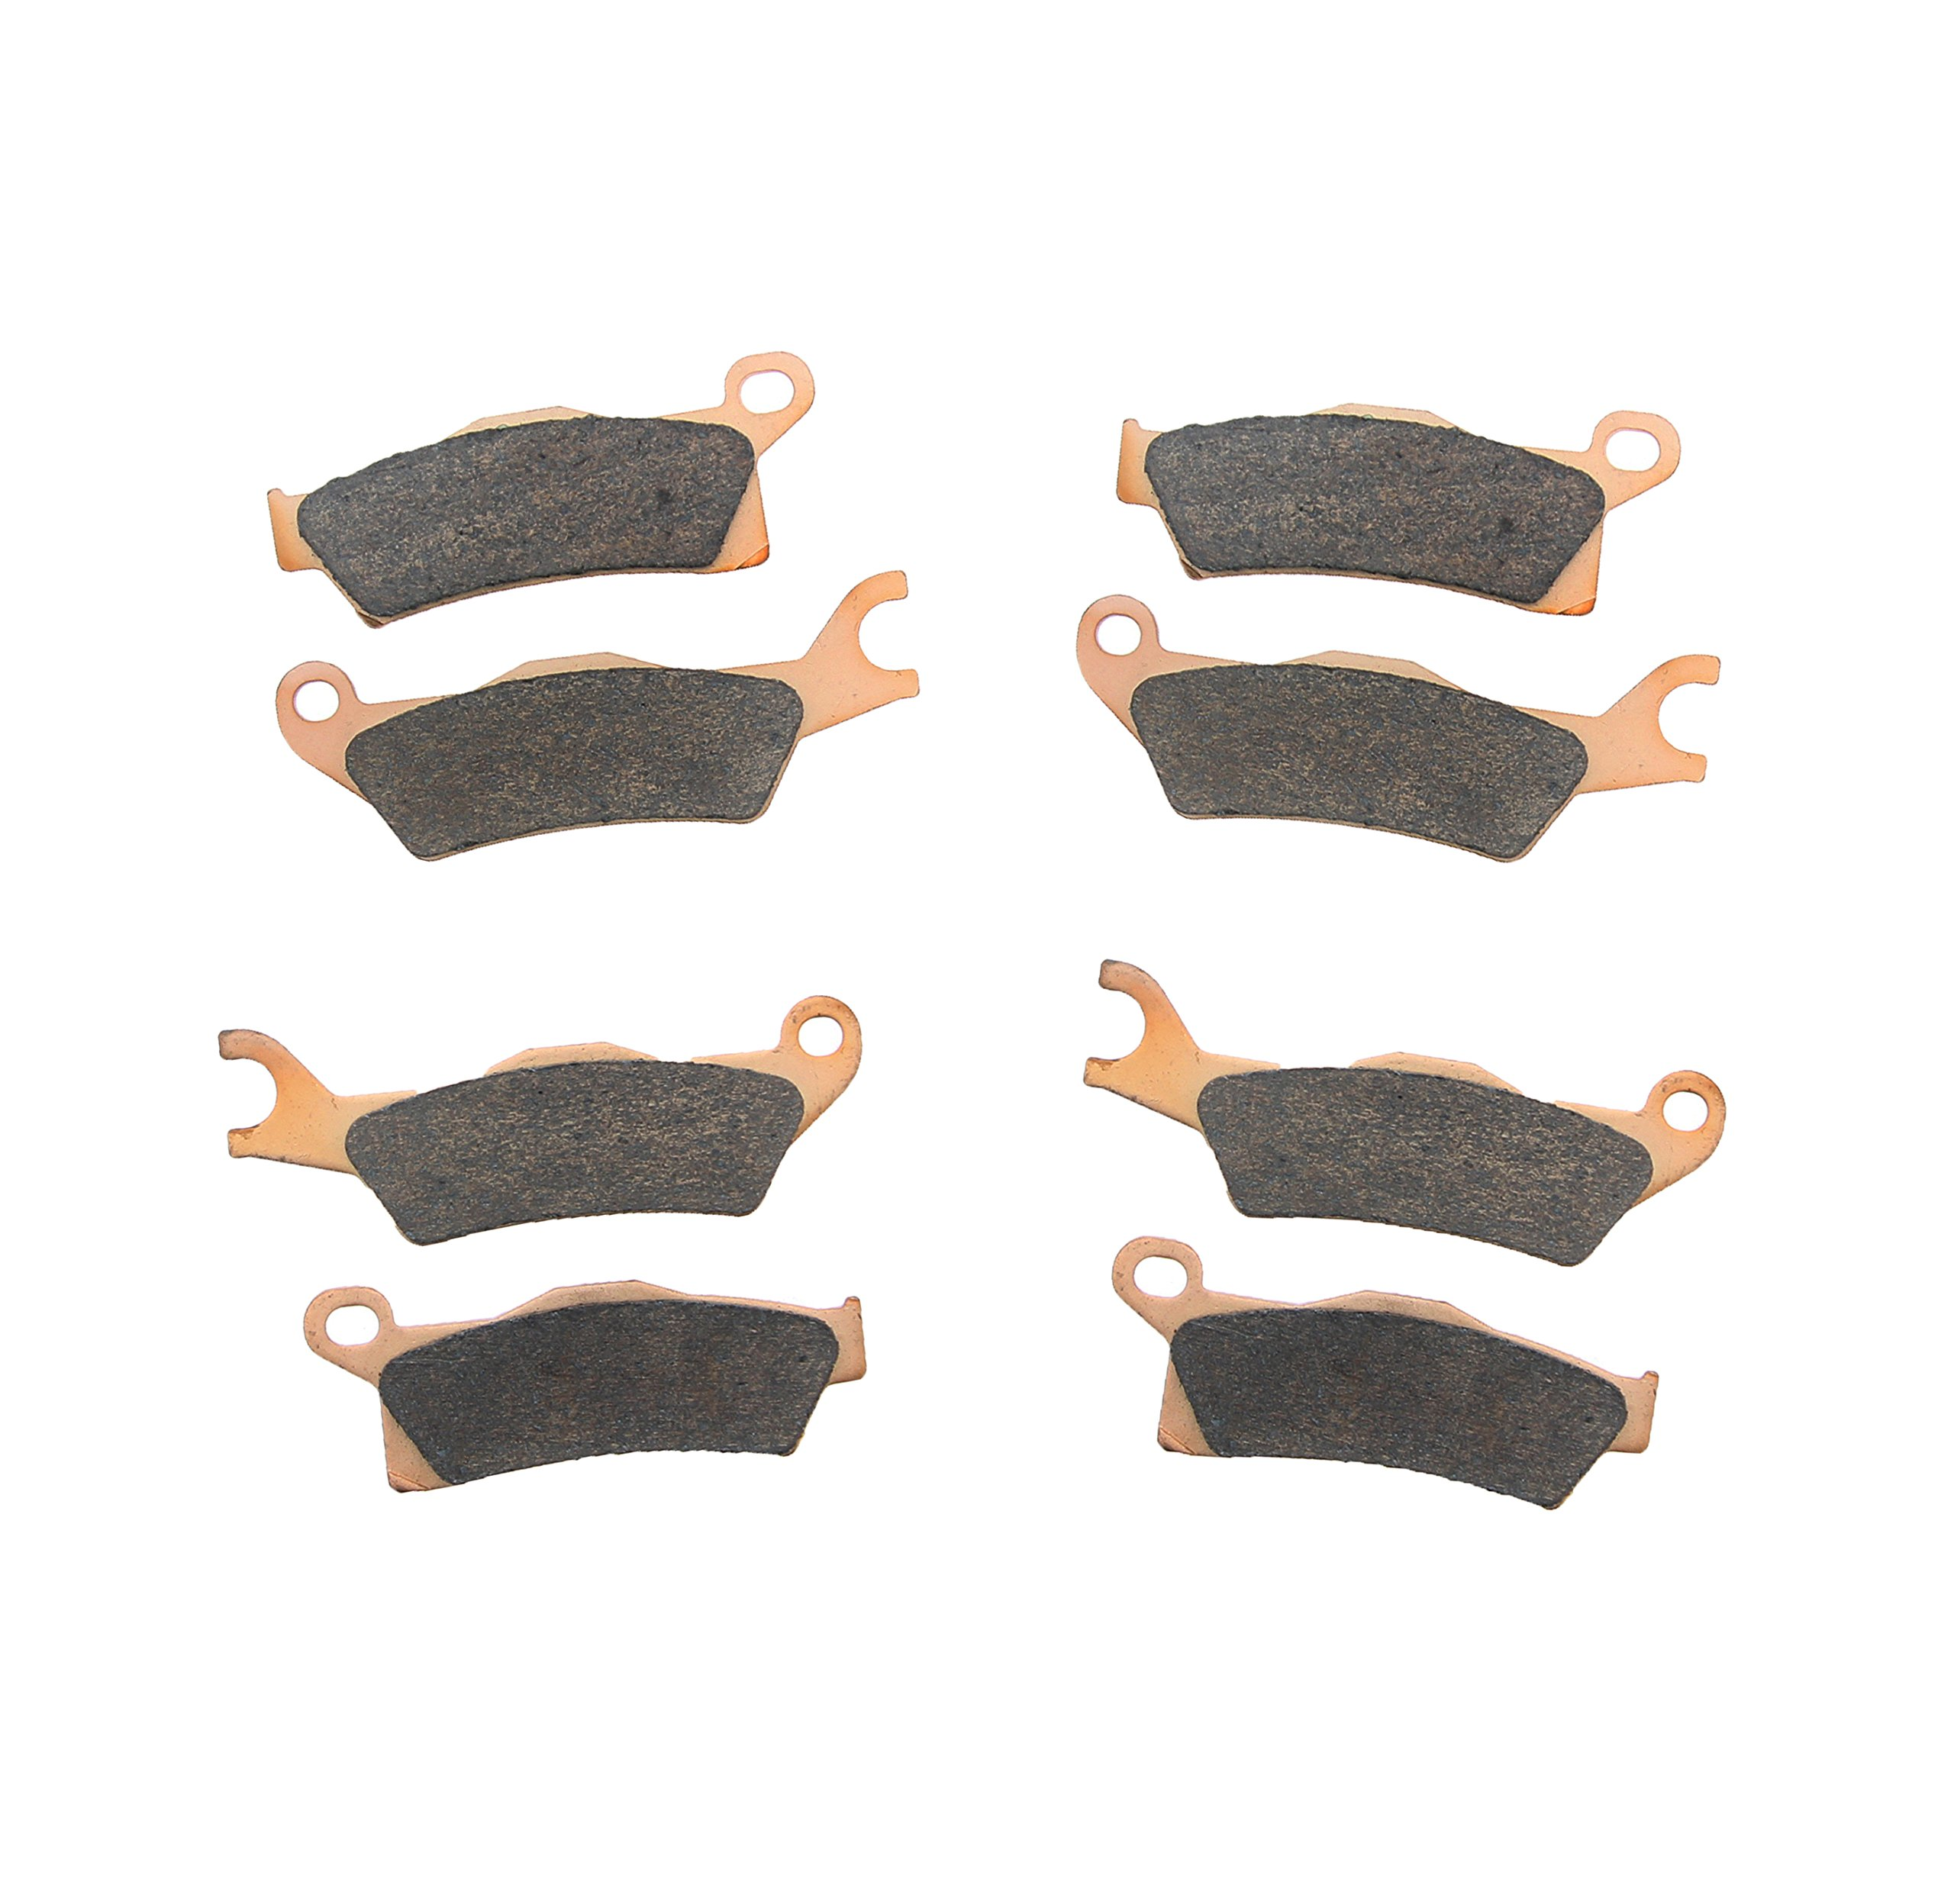 Brake Pads fit Can-Am Renegade 1000R 4x4 XMR 2016-2019 Front and Rear by Race-Driven